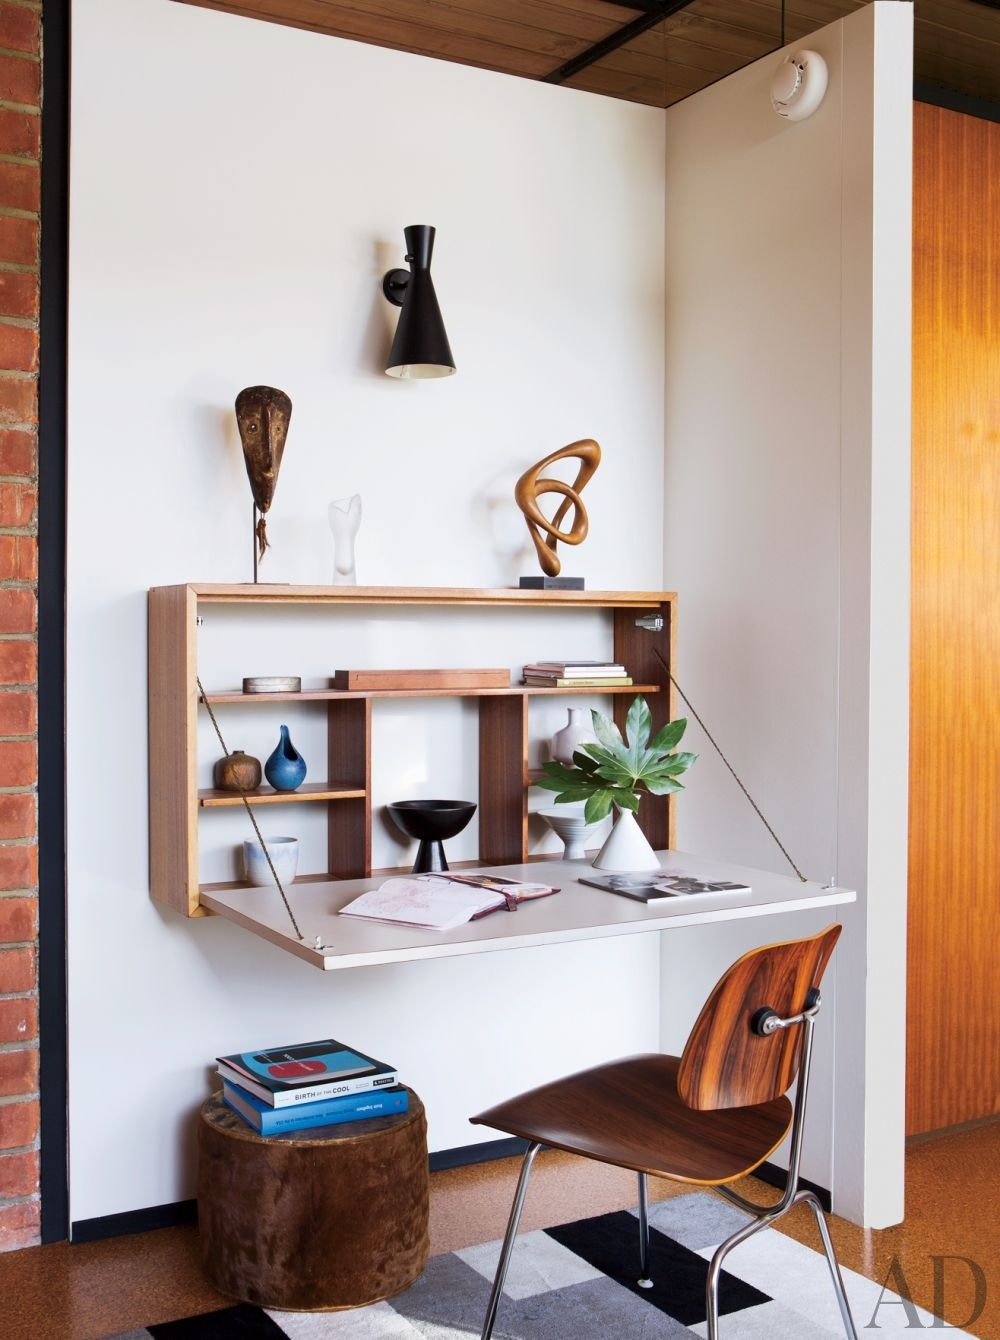 Beautiful minimal home office with Ellwood-Lomax drop front desk. #homeoffice #interiordesign #dropfront #desks